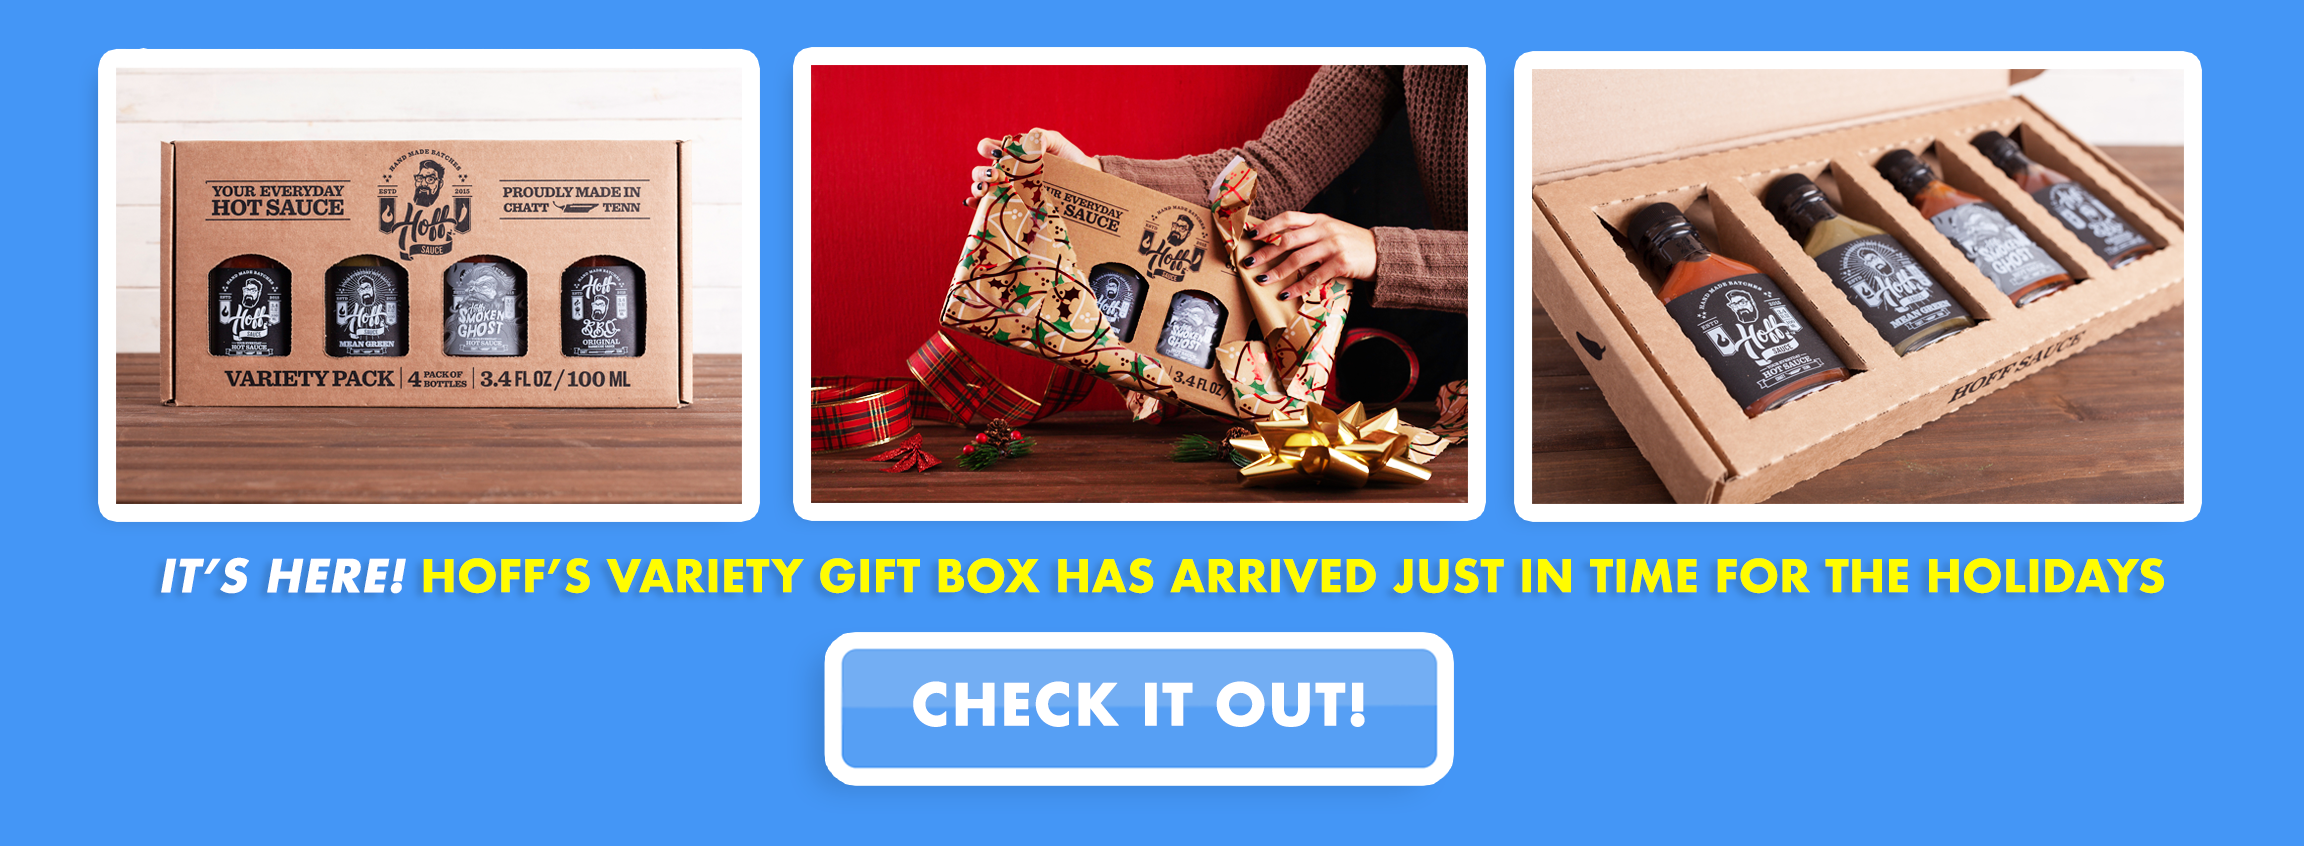 banner-for-gift-box3.png